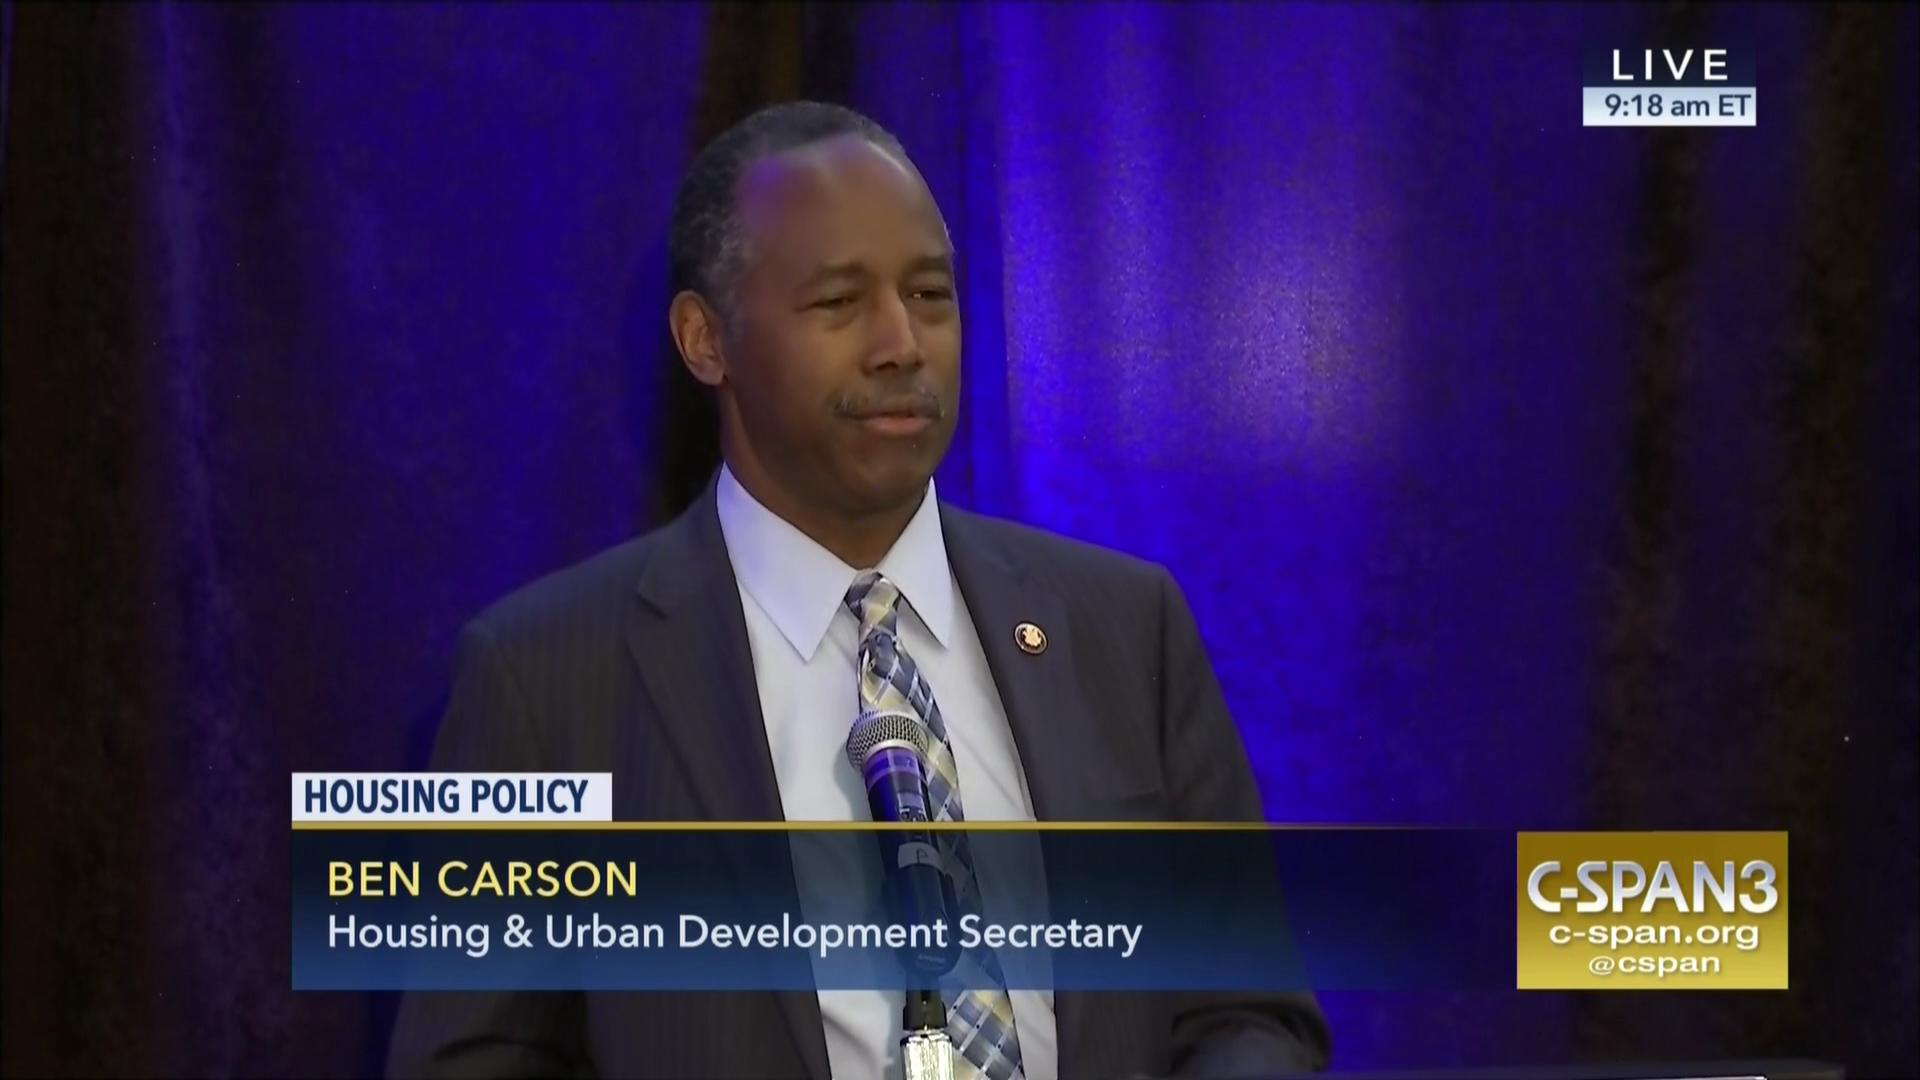 hud secretary addresses national housing conference, jun 9 2017